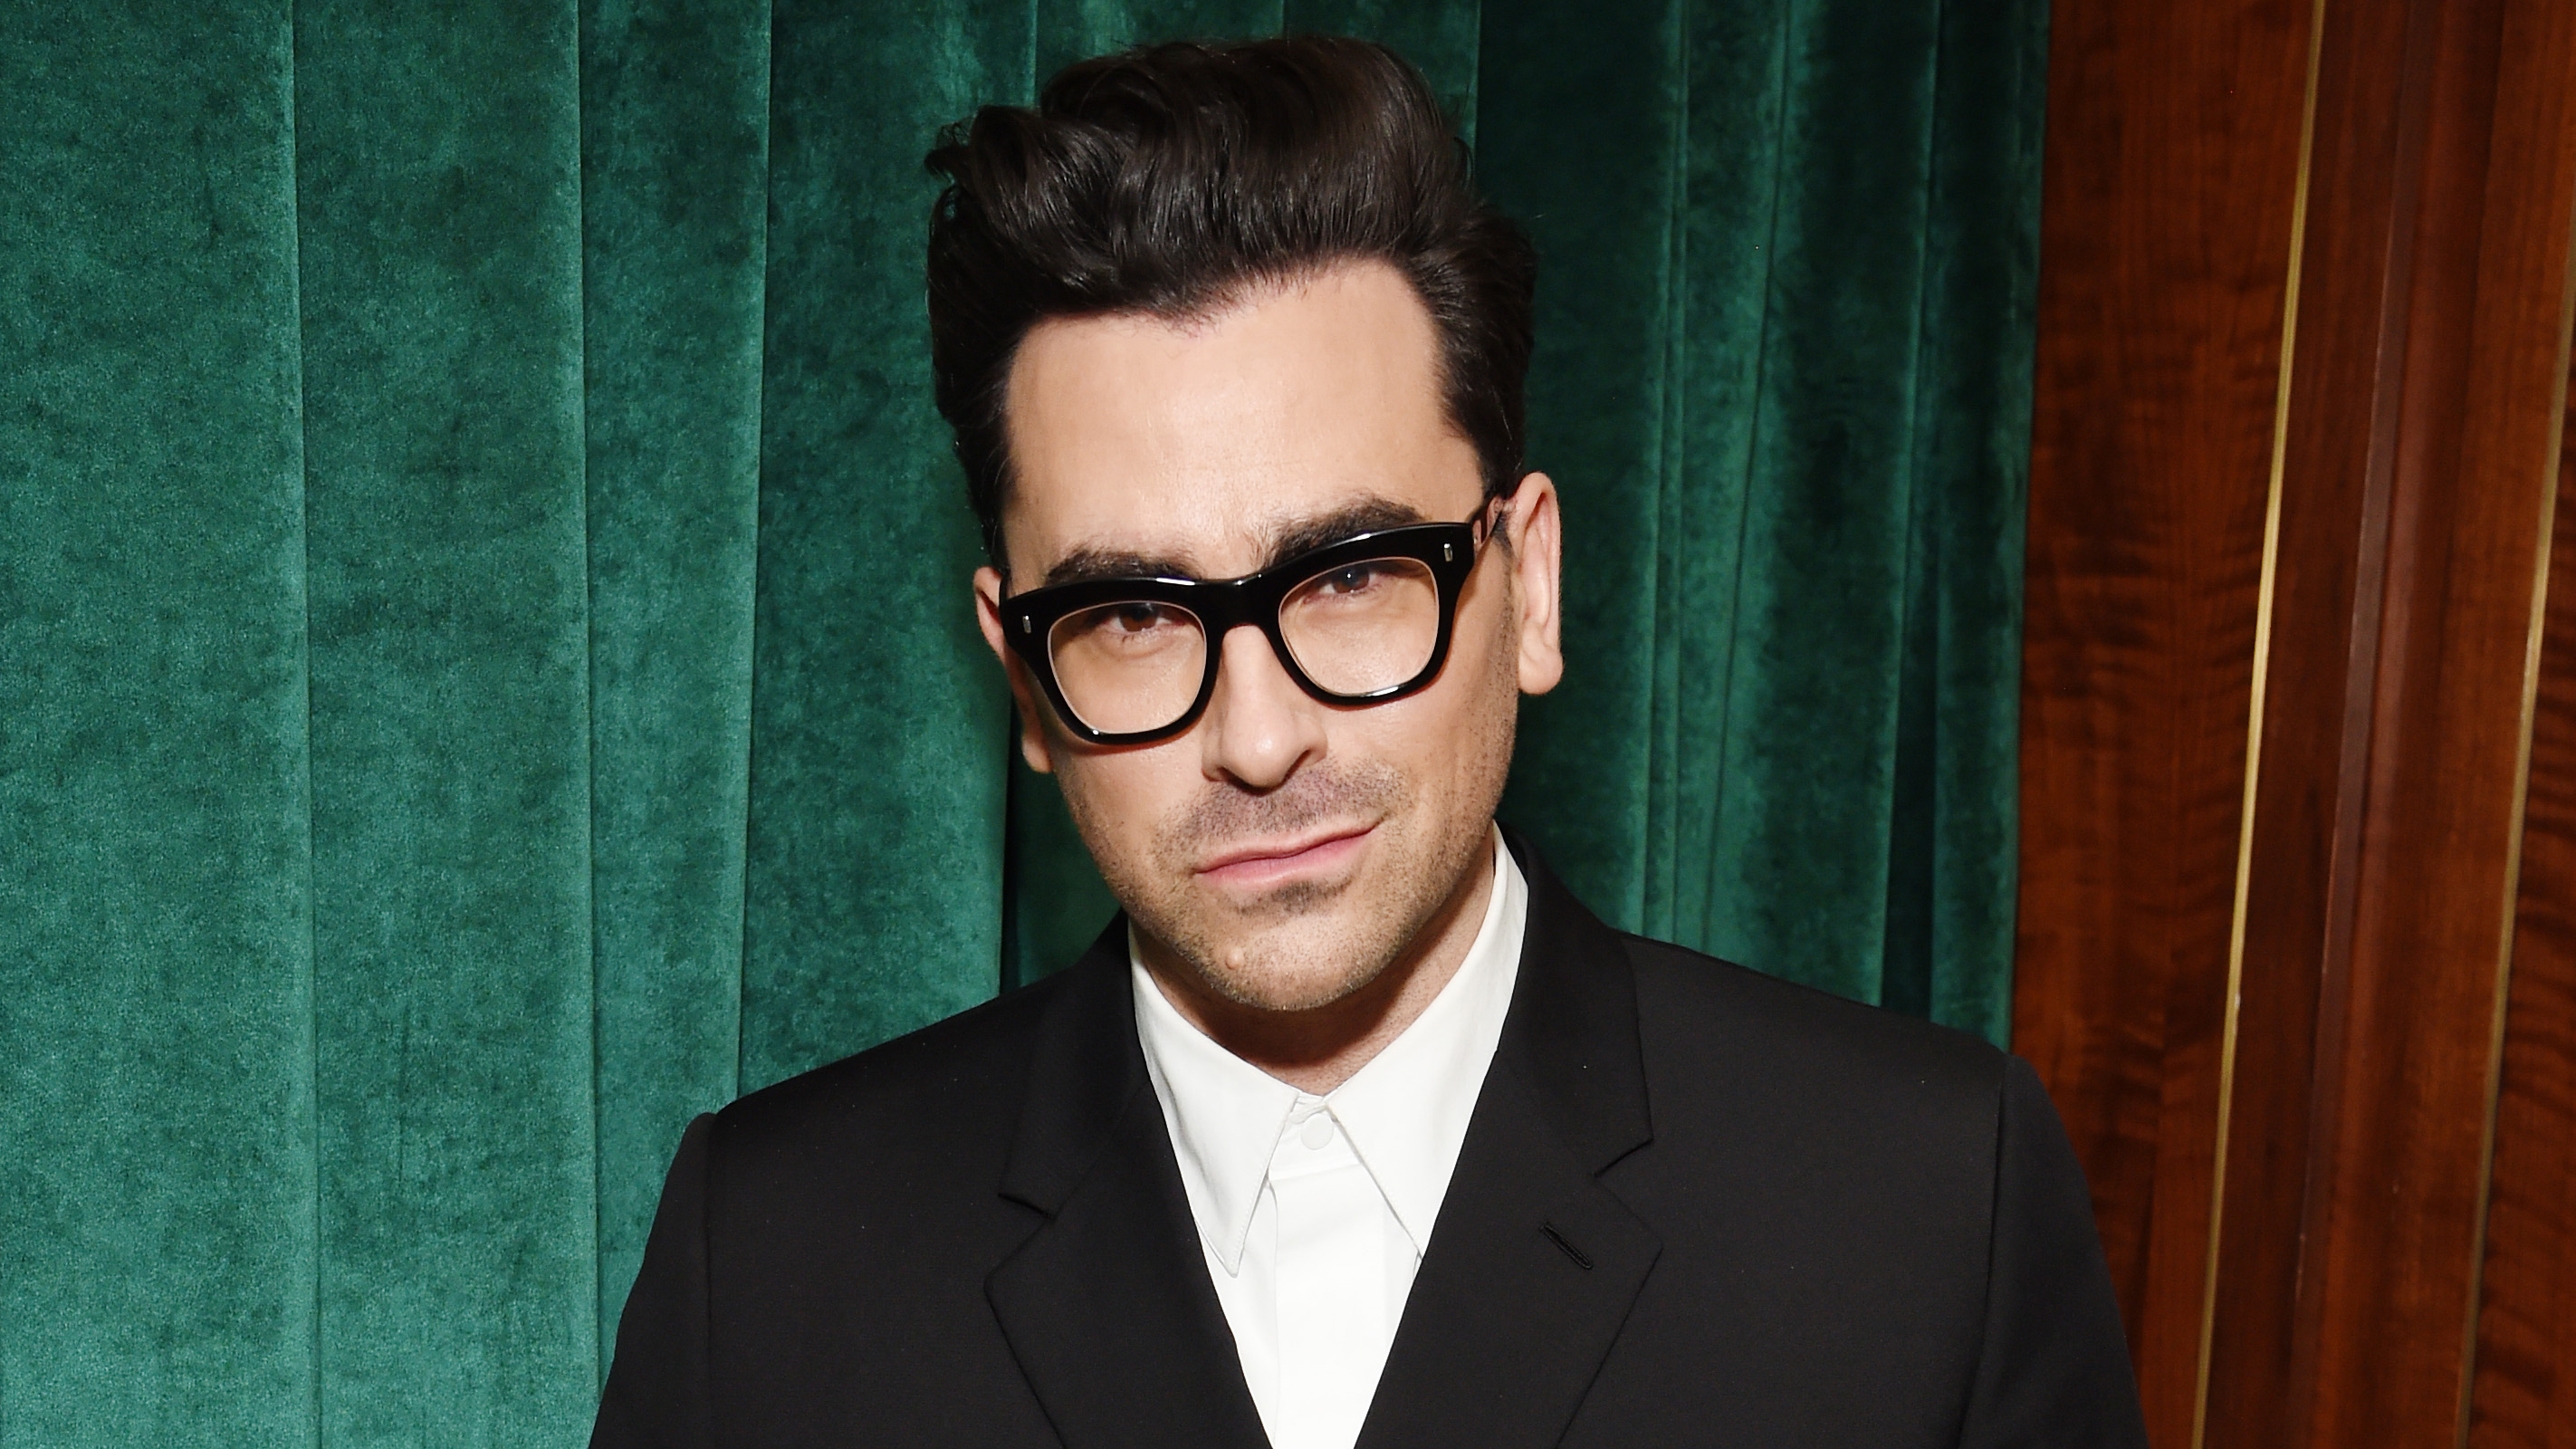 Dan Levy is encouraging face coverings as an act of kindness